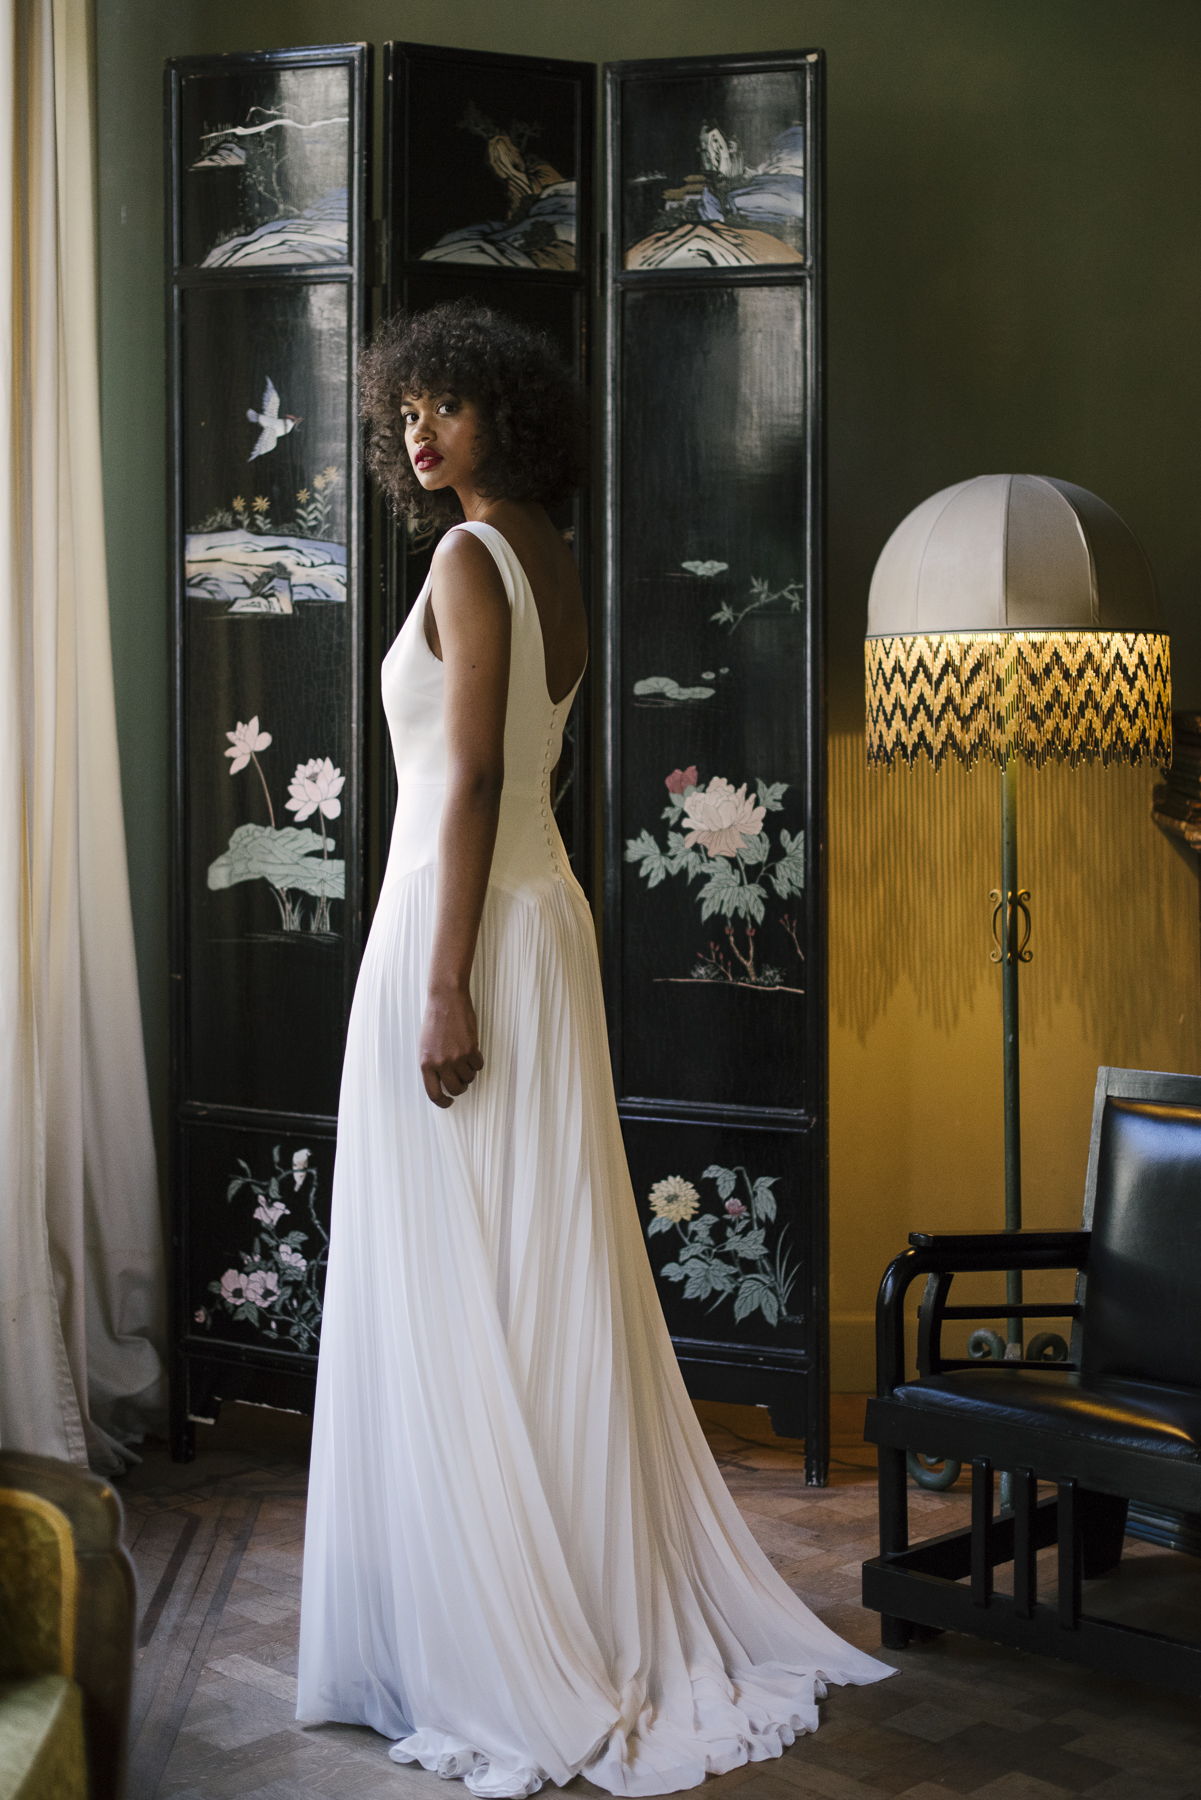 valentine-avoh-robe-mariee-grace-wedding-dress-bruxelles-photo-elodie-timmermans-5.jpg